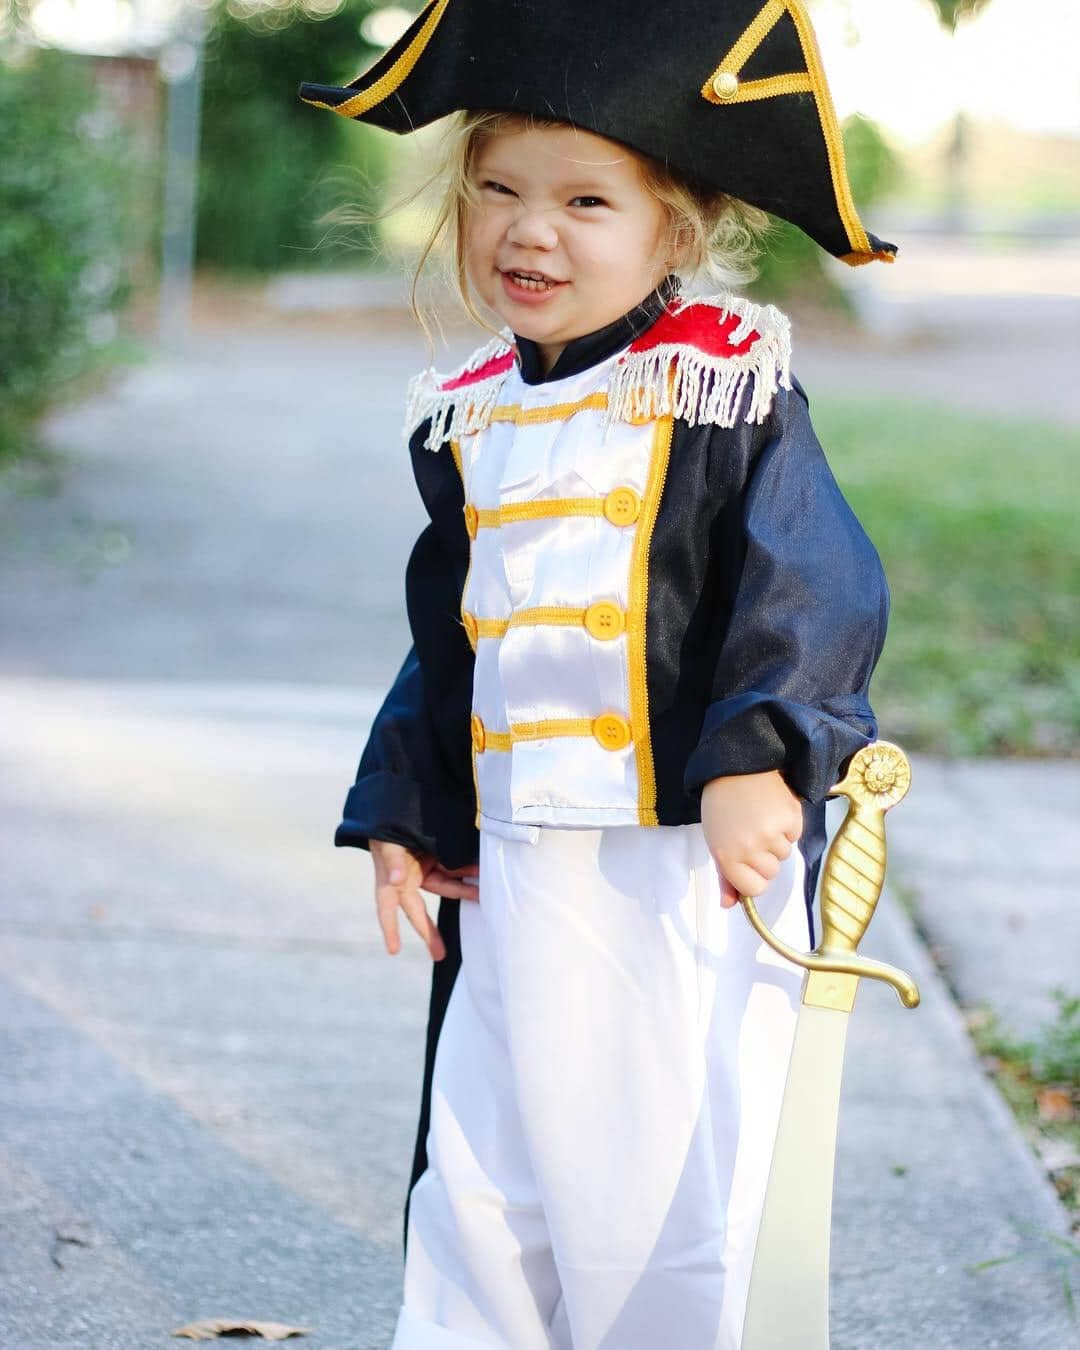 Greatest Showman Halloween Costumes - solder